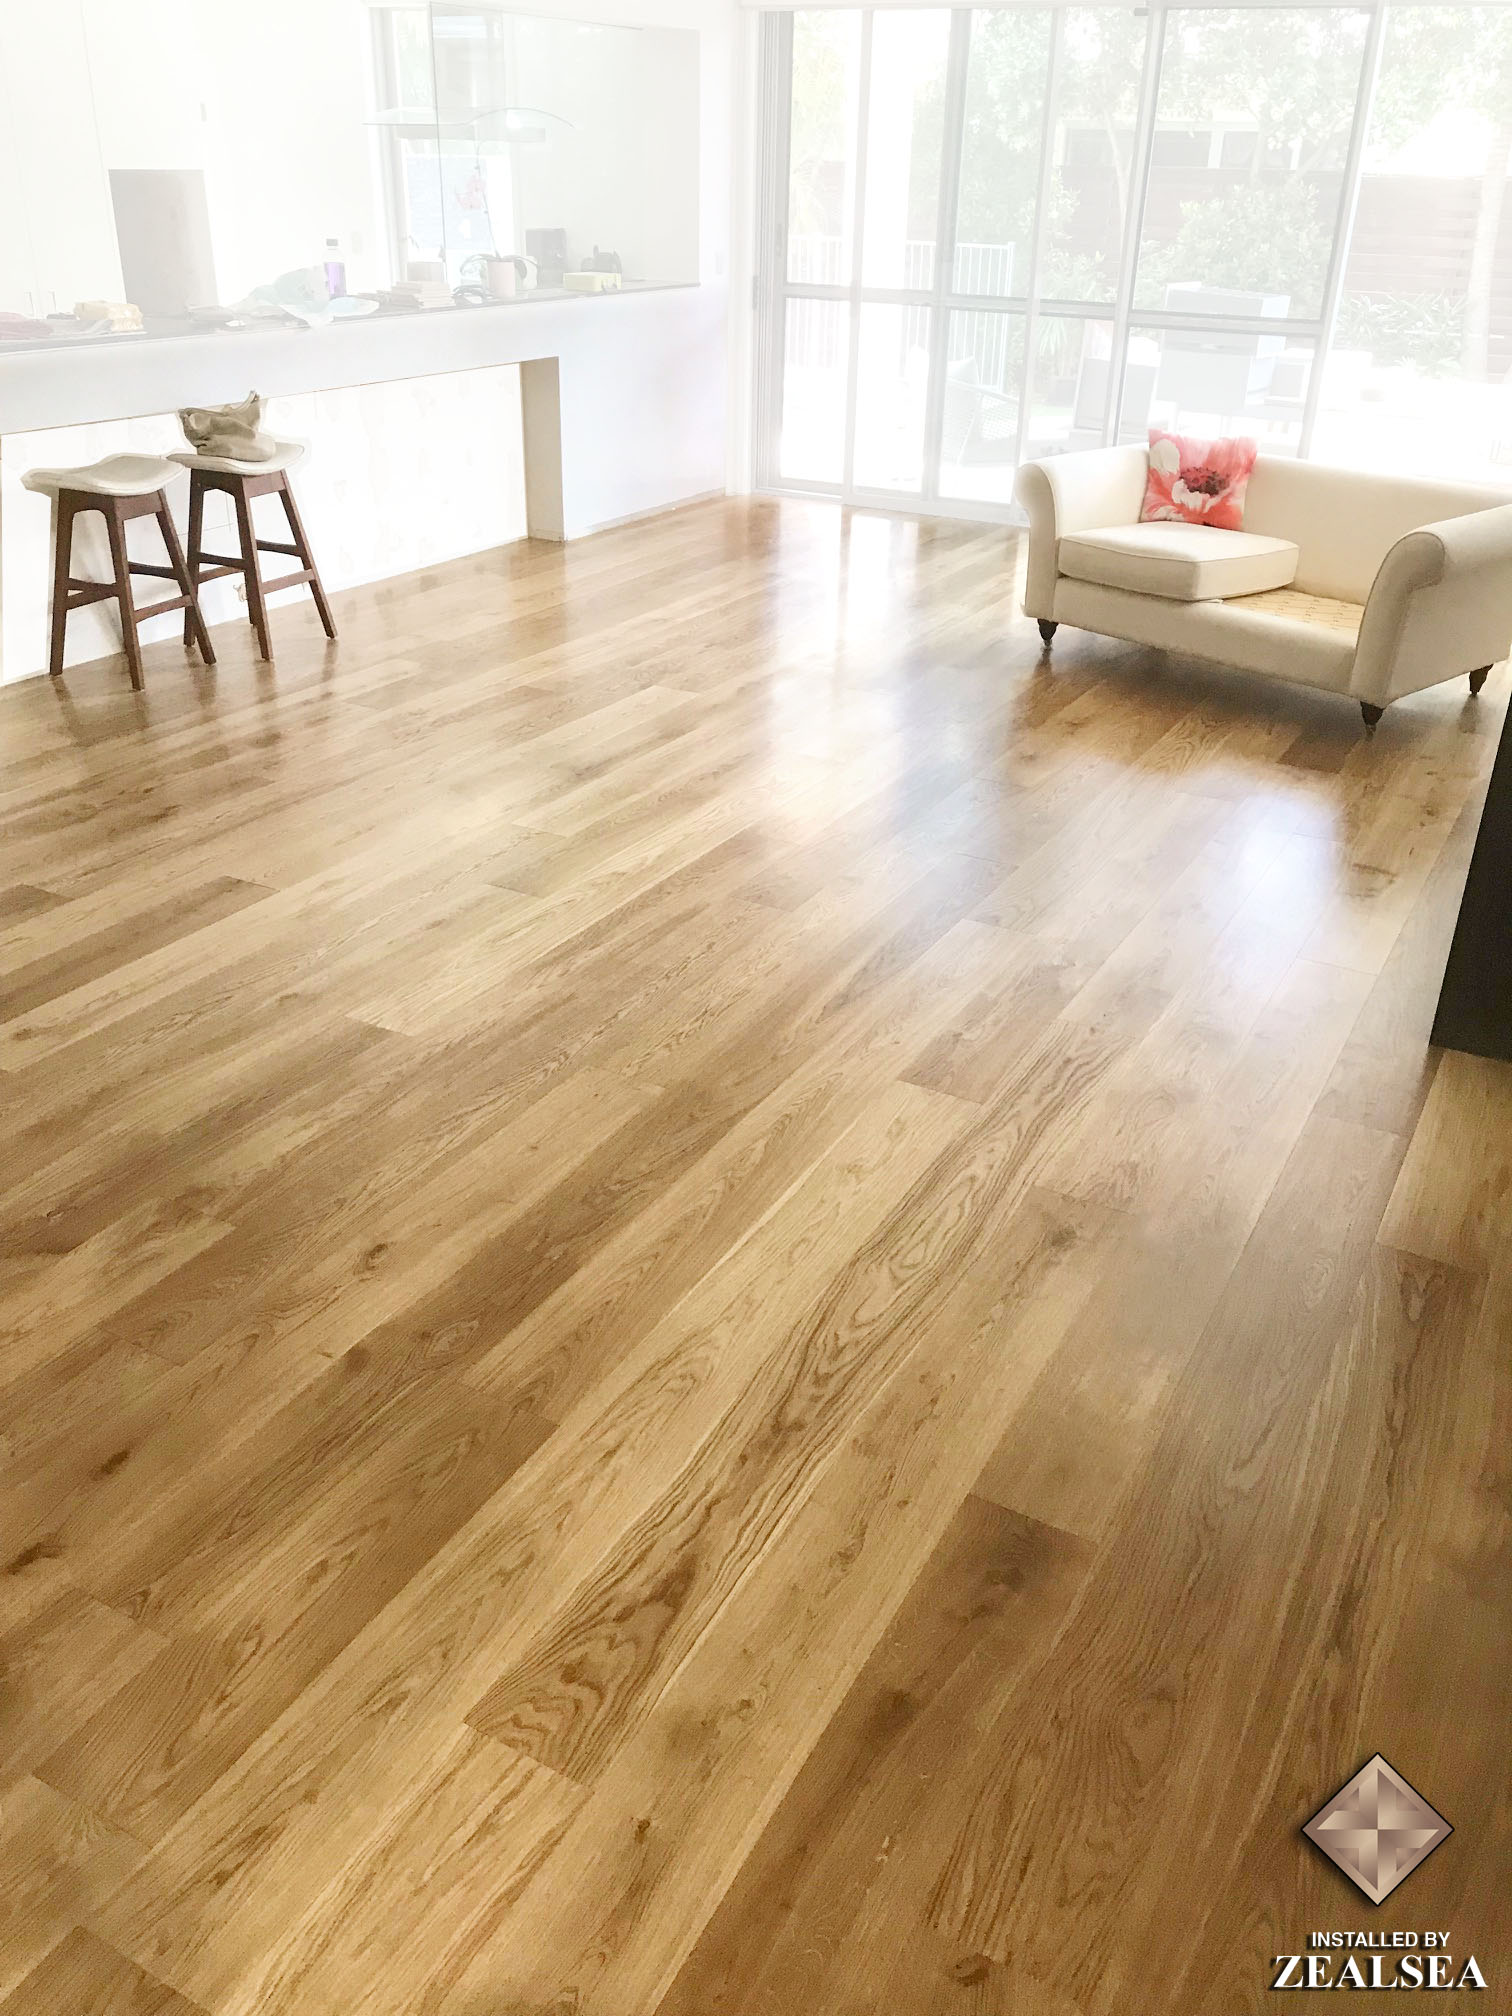 zealsea timber flooring professional installation new farm coswick natural 1